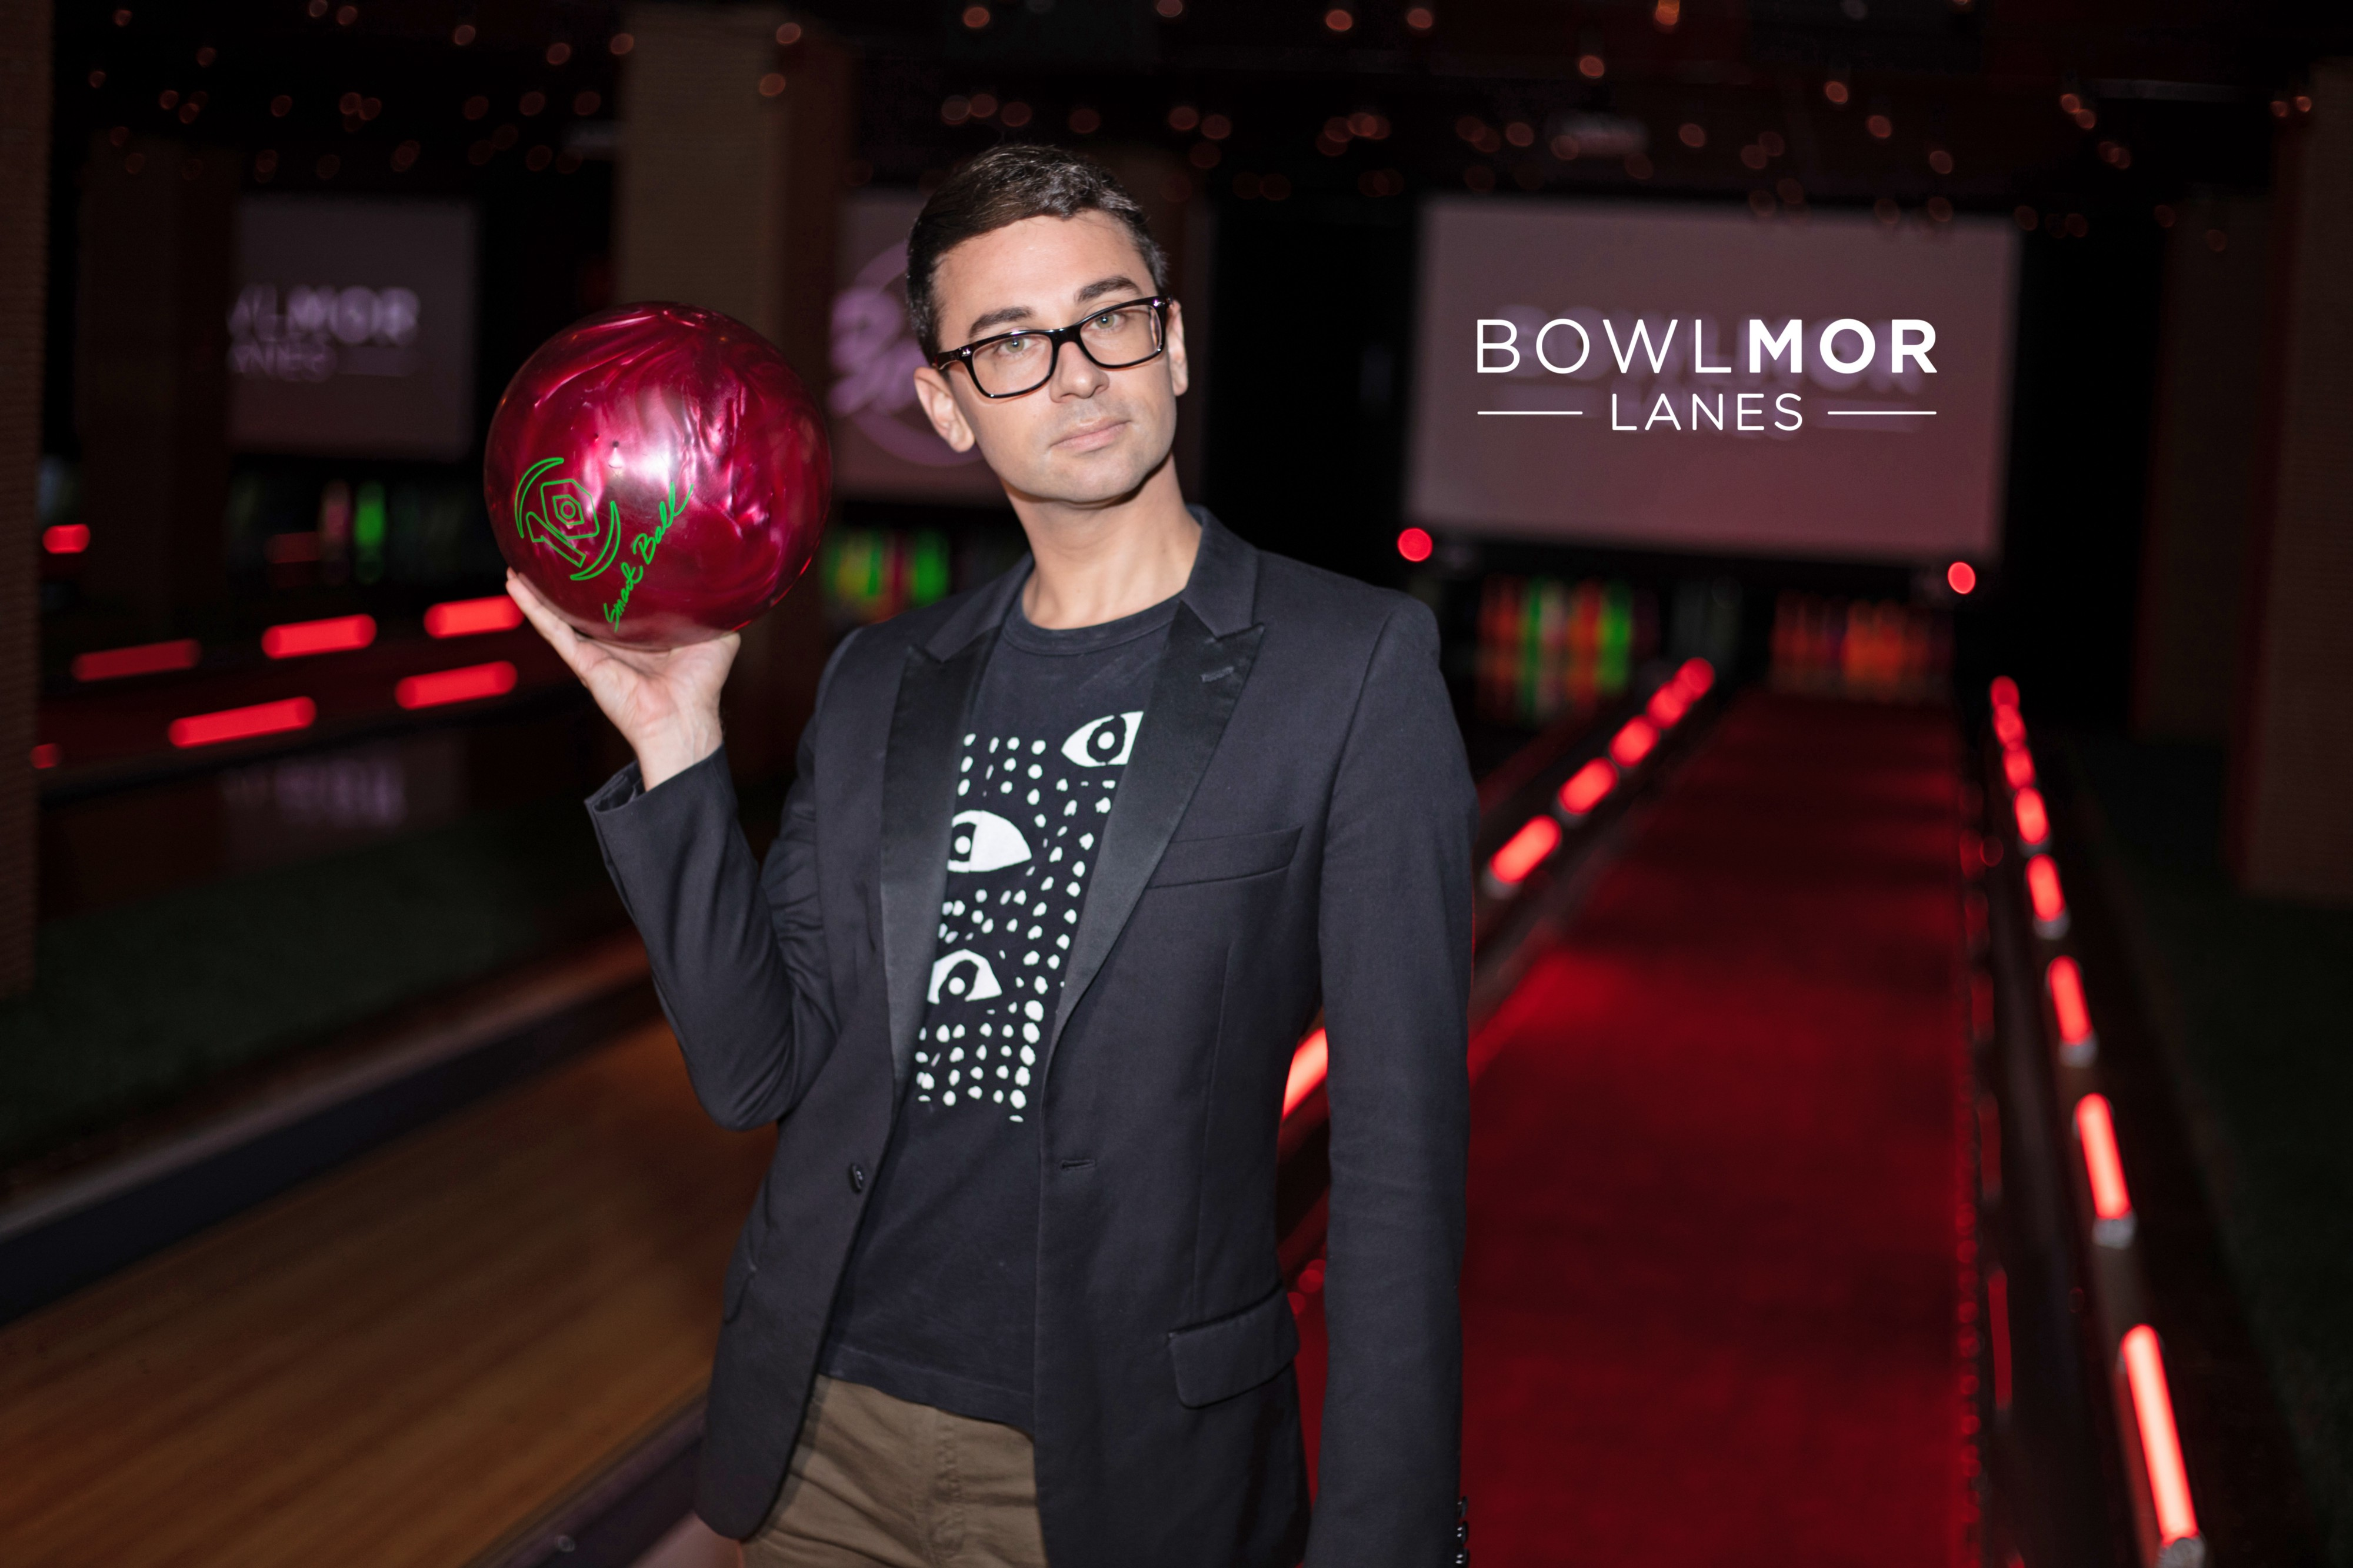 NYC Resident Wins National Contest to Redesign Bowling Shoes